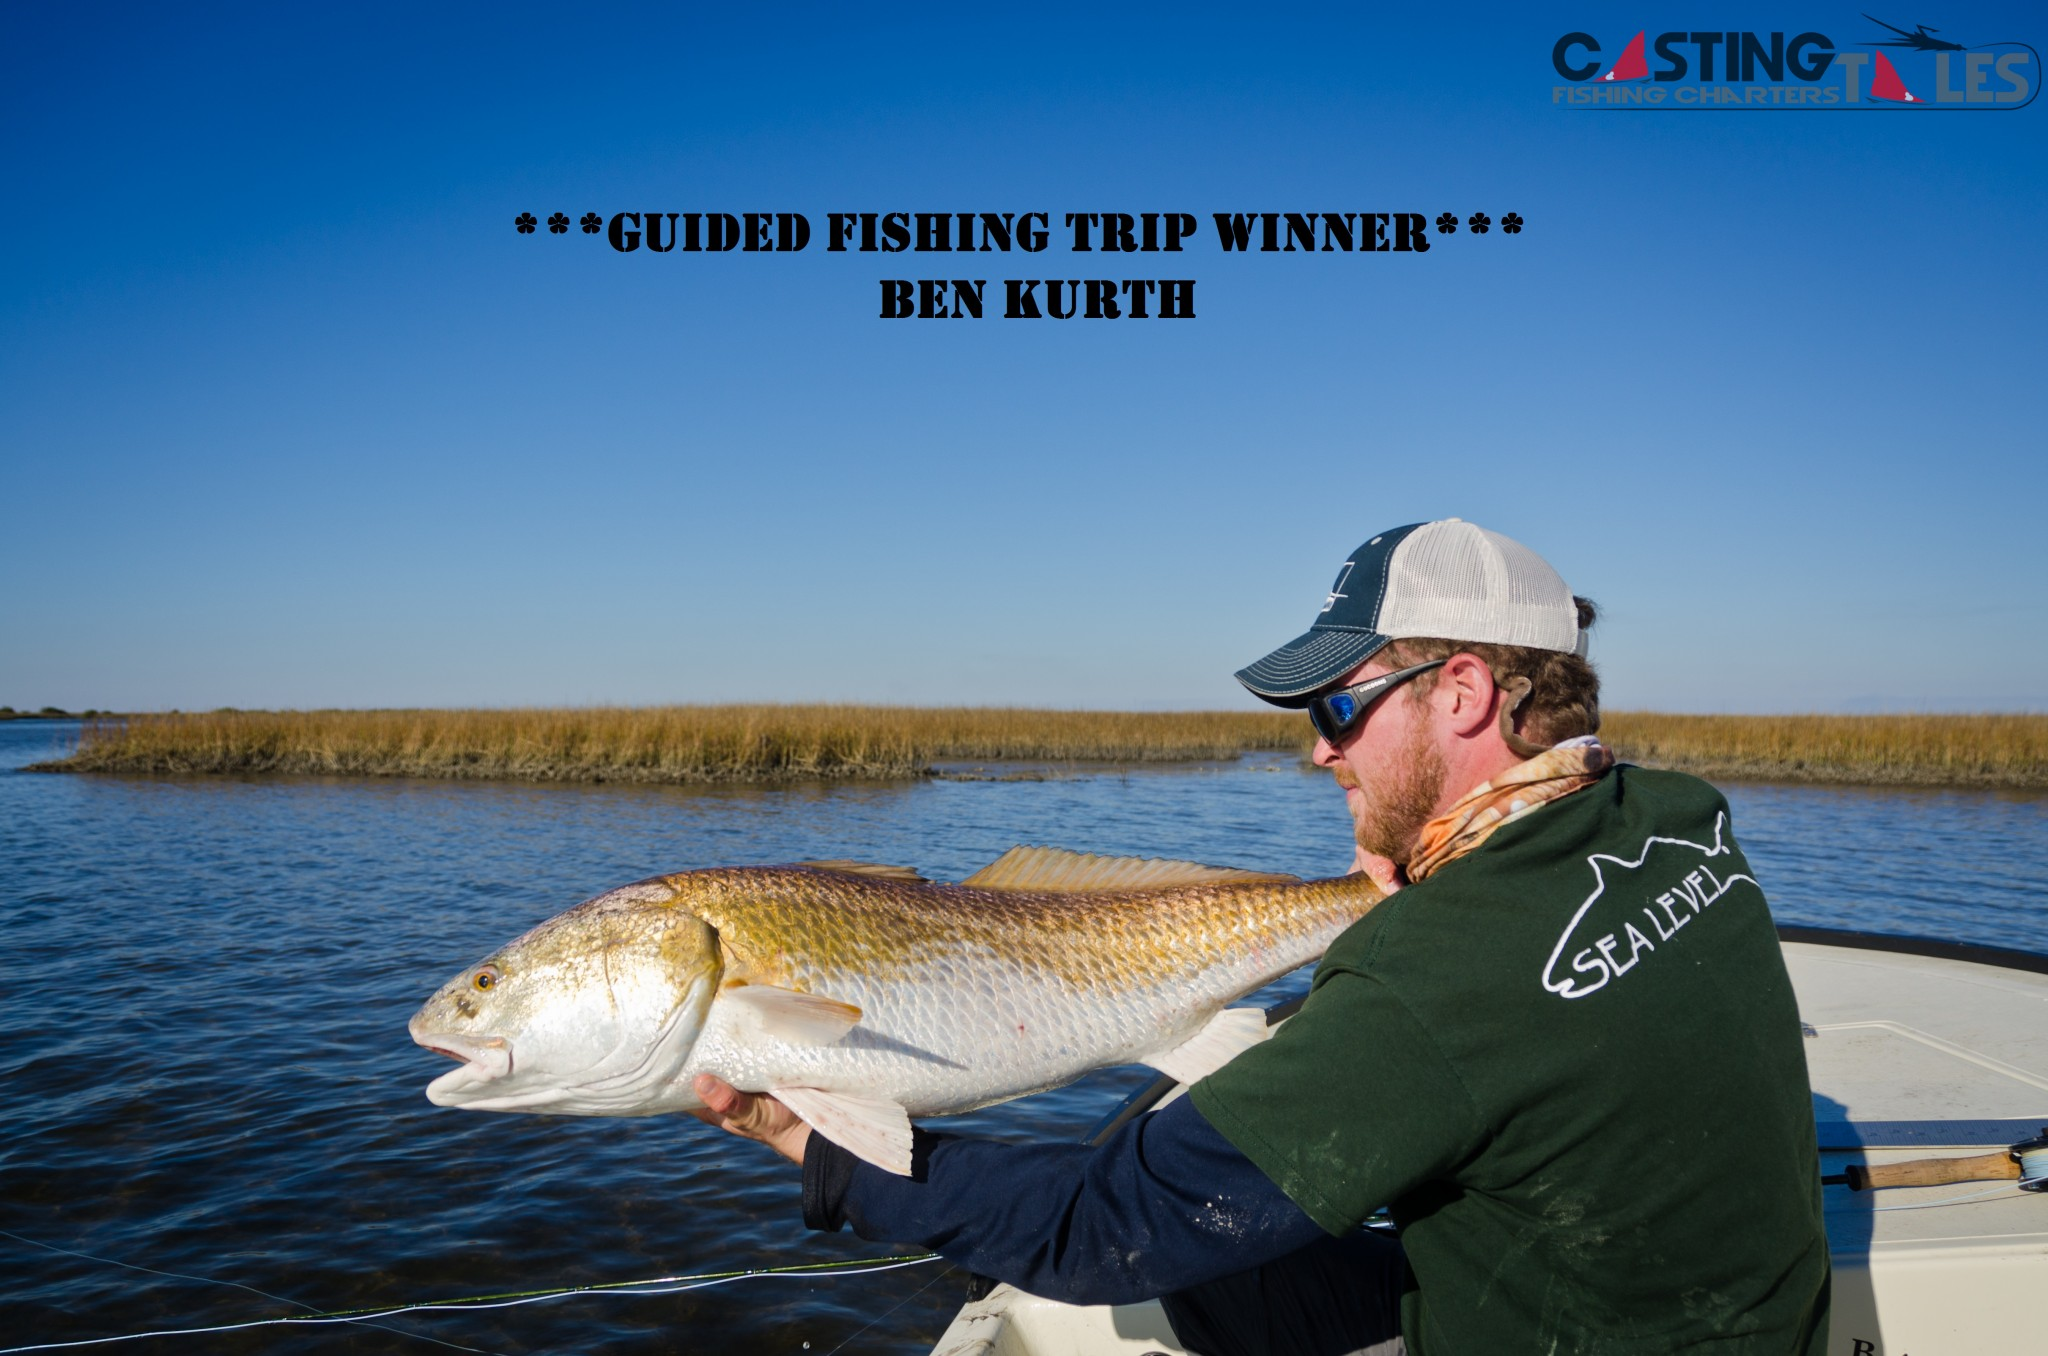 Guided fishing trip giveaway winner casting tales for Free fishing tackle giveaway